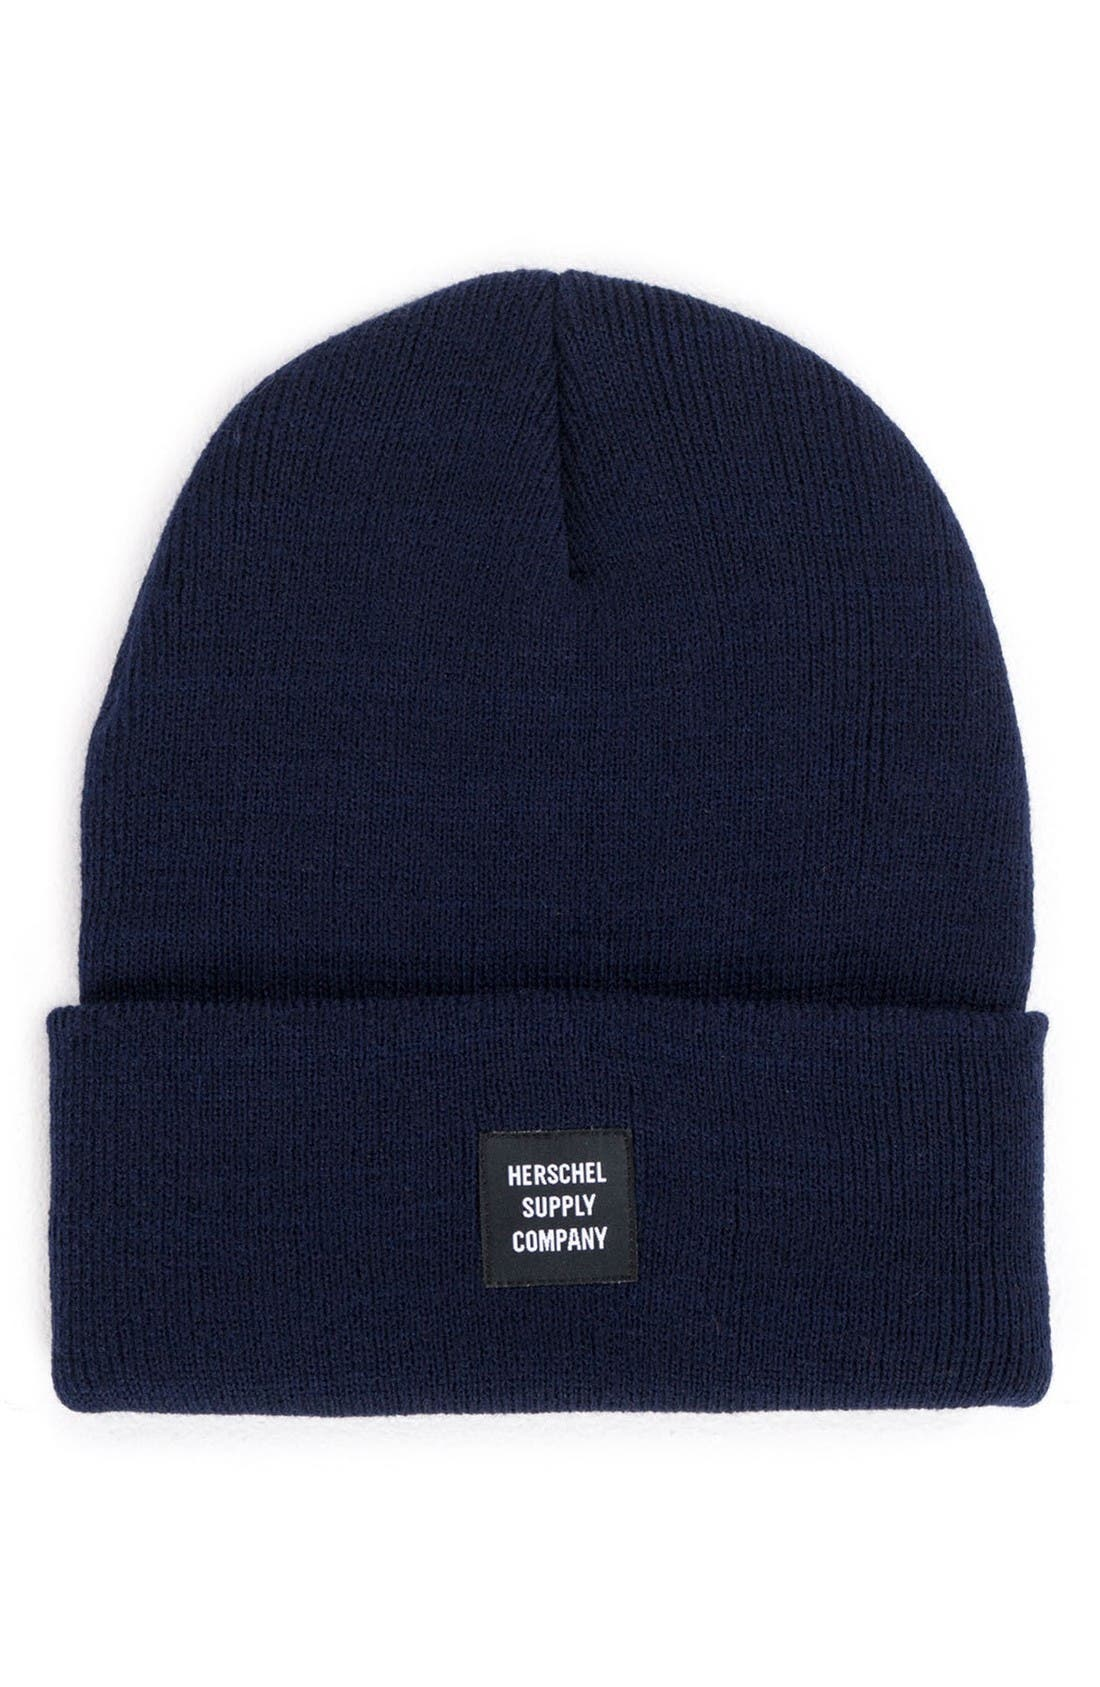 Herschel Supply Co. Abbott Knit Beanie